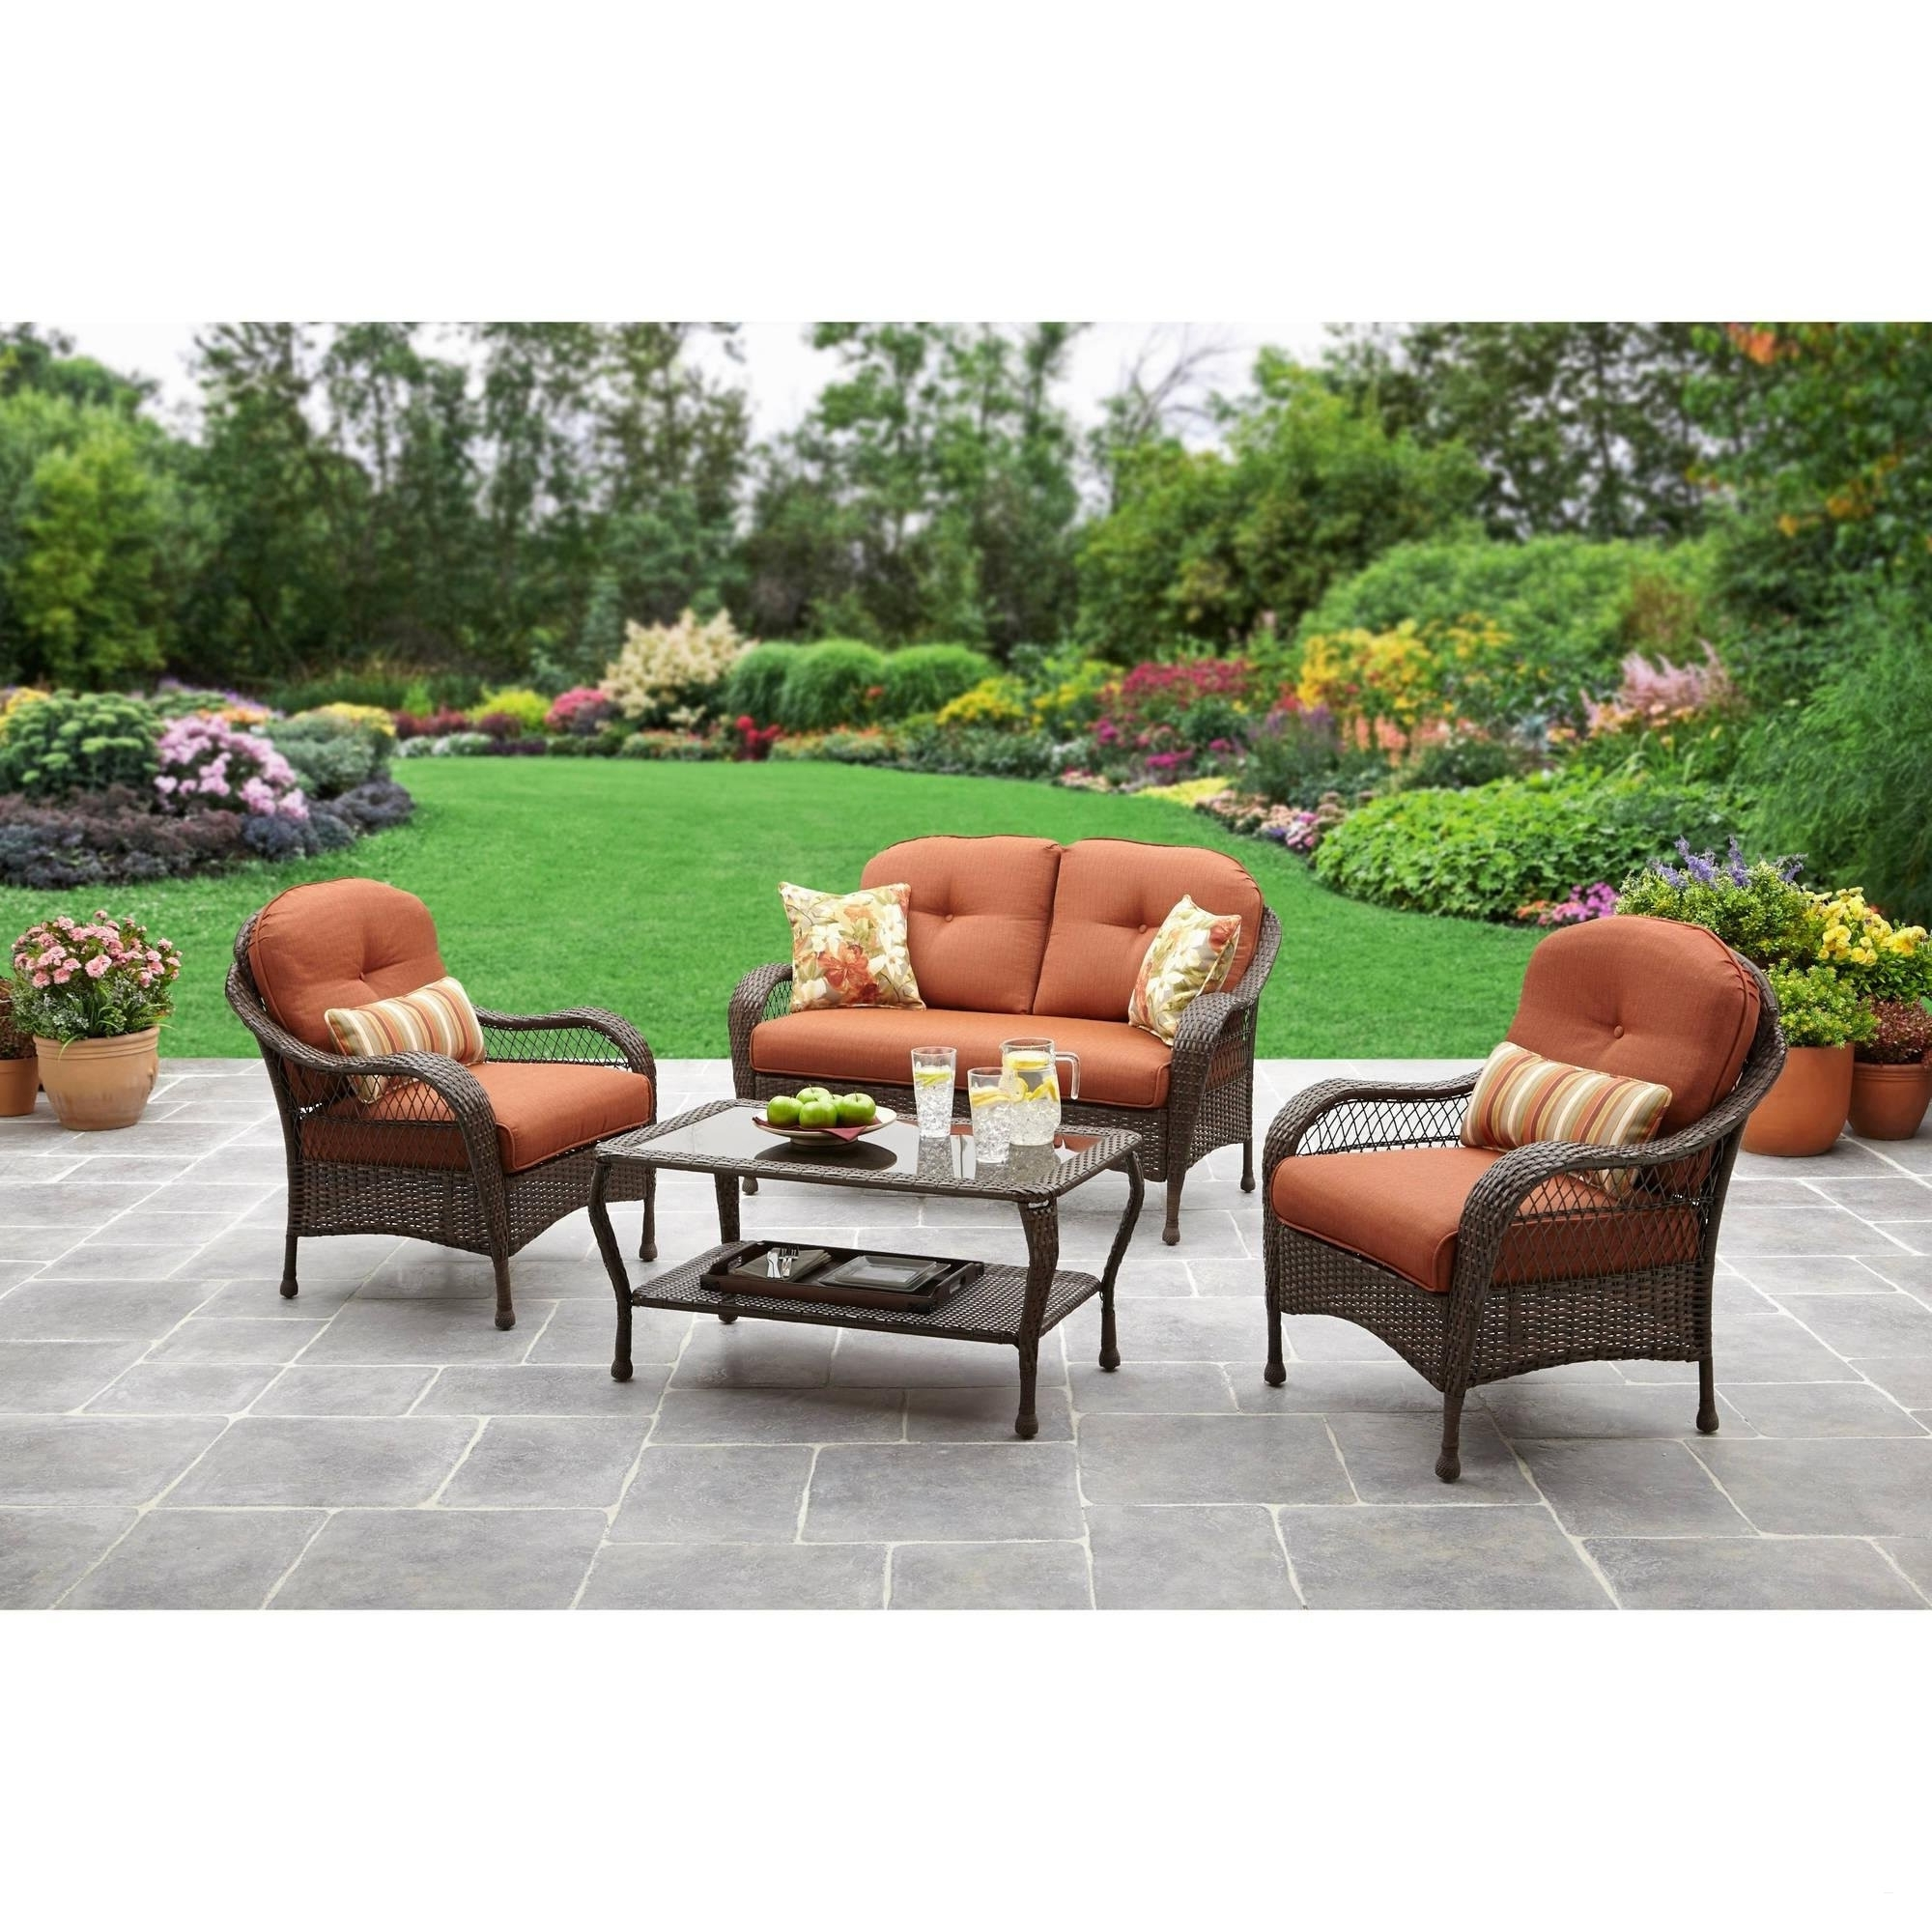 Well Liked Patio Furniture Conversation Sets At Home Depot In Home Depot Patio Furniture Amazon Outdoor Furniture Patio Furniture (View 20 of 20)